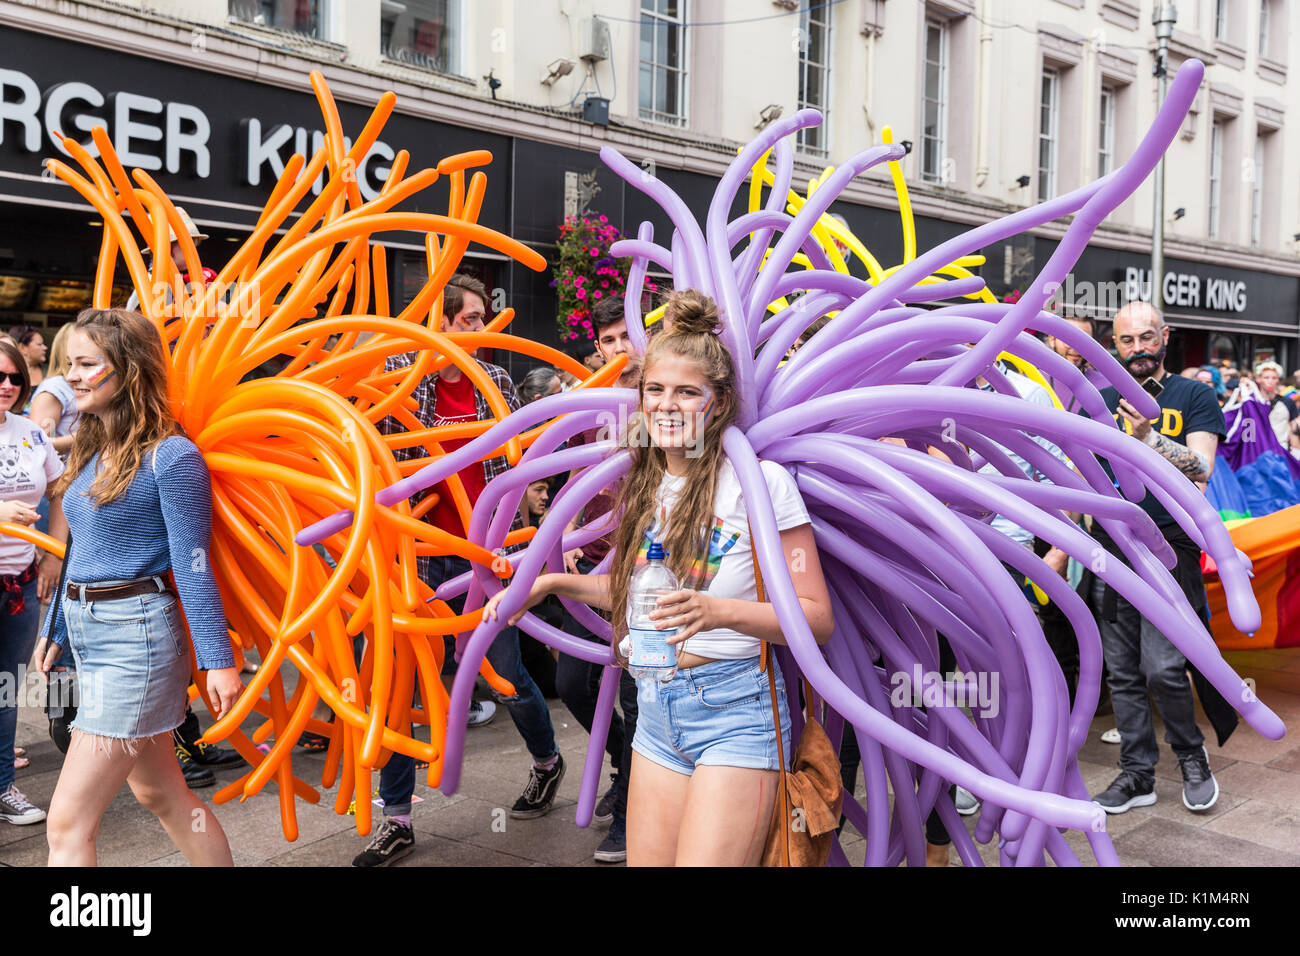 Two girls with large balloon displays march in the Cardiff Pride Parade, 2017 - Stock Image